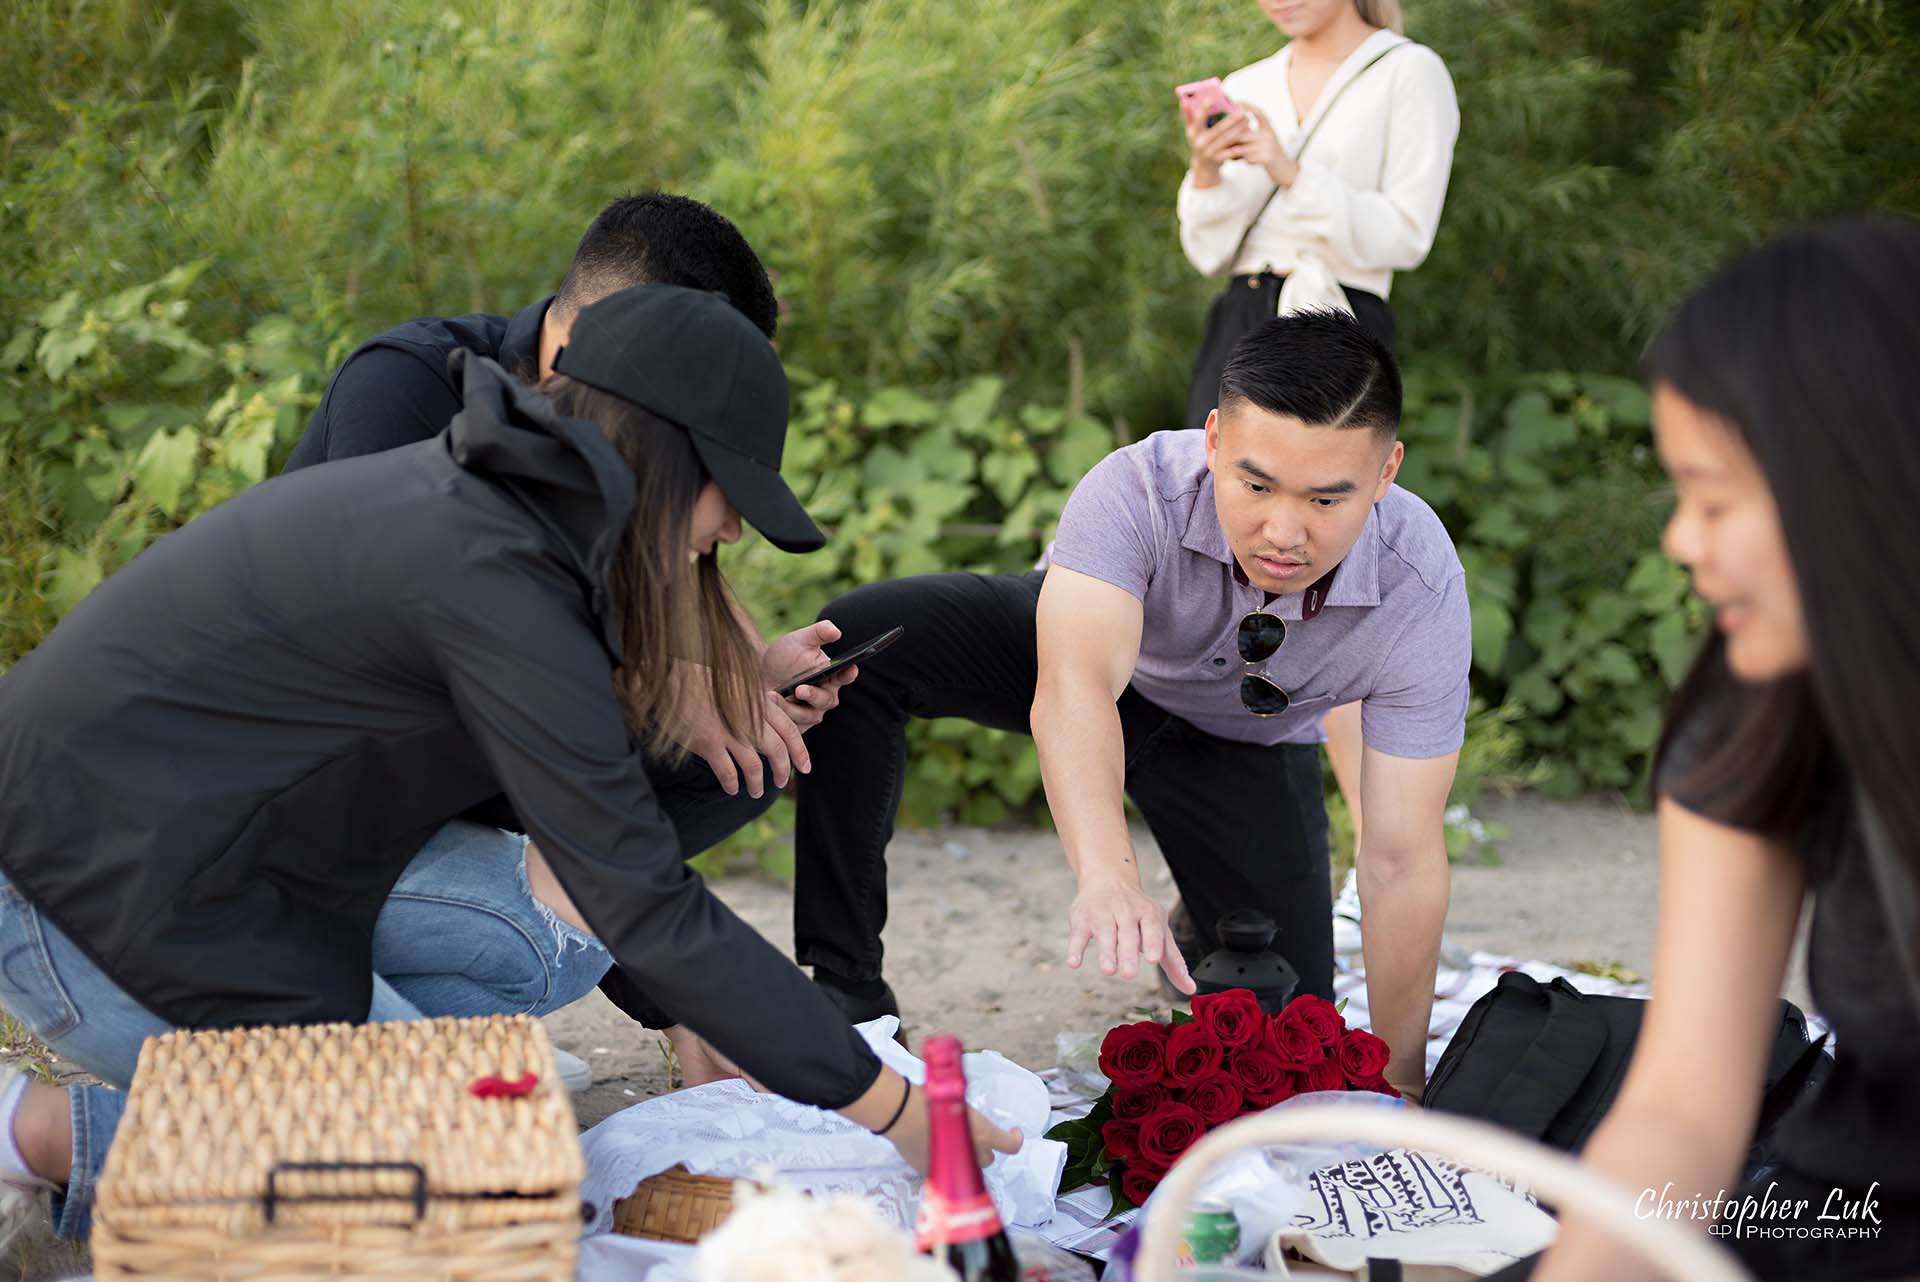 Christopher Luk Toronto Photographer Scarborough Bluffs Beach Park Sunset Surprise Wedding Marriage Engagement Proposal Candid Natural Photojournalistic Bride Groom Friends Helpers Setting Up